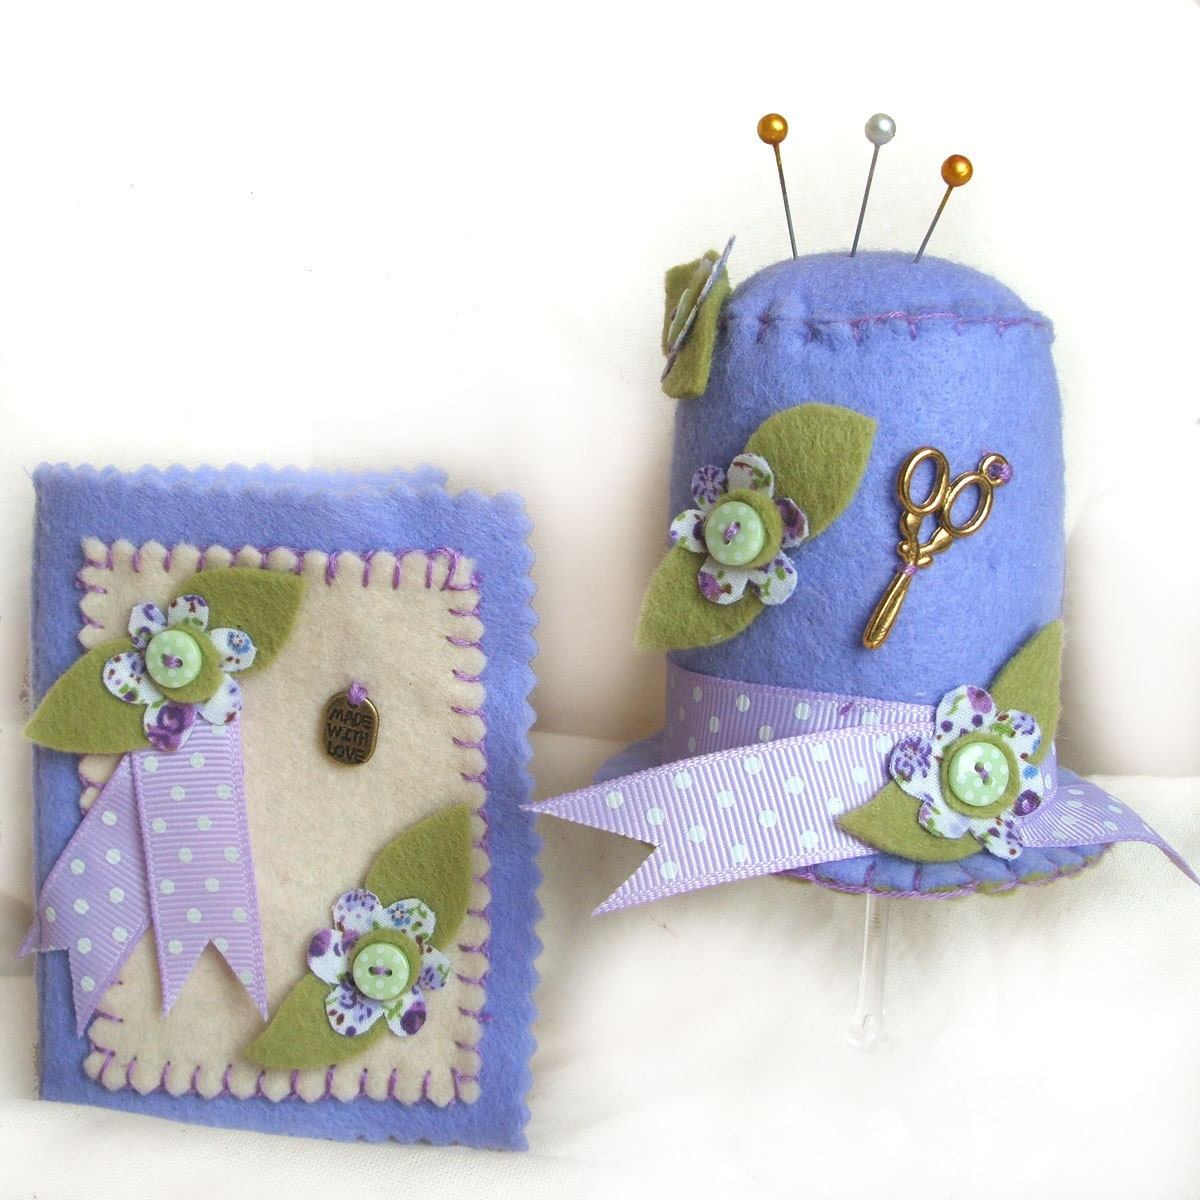 Pin Cushion And Needle Case Sewing Gift Set With A Lilac